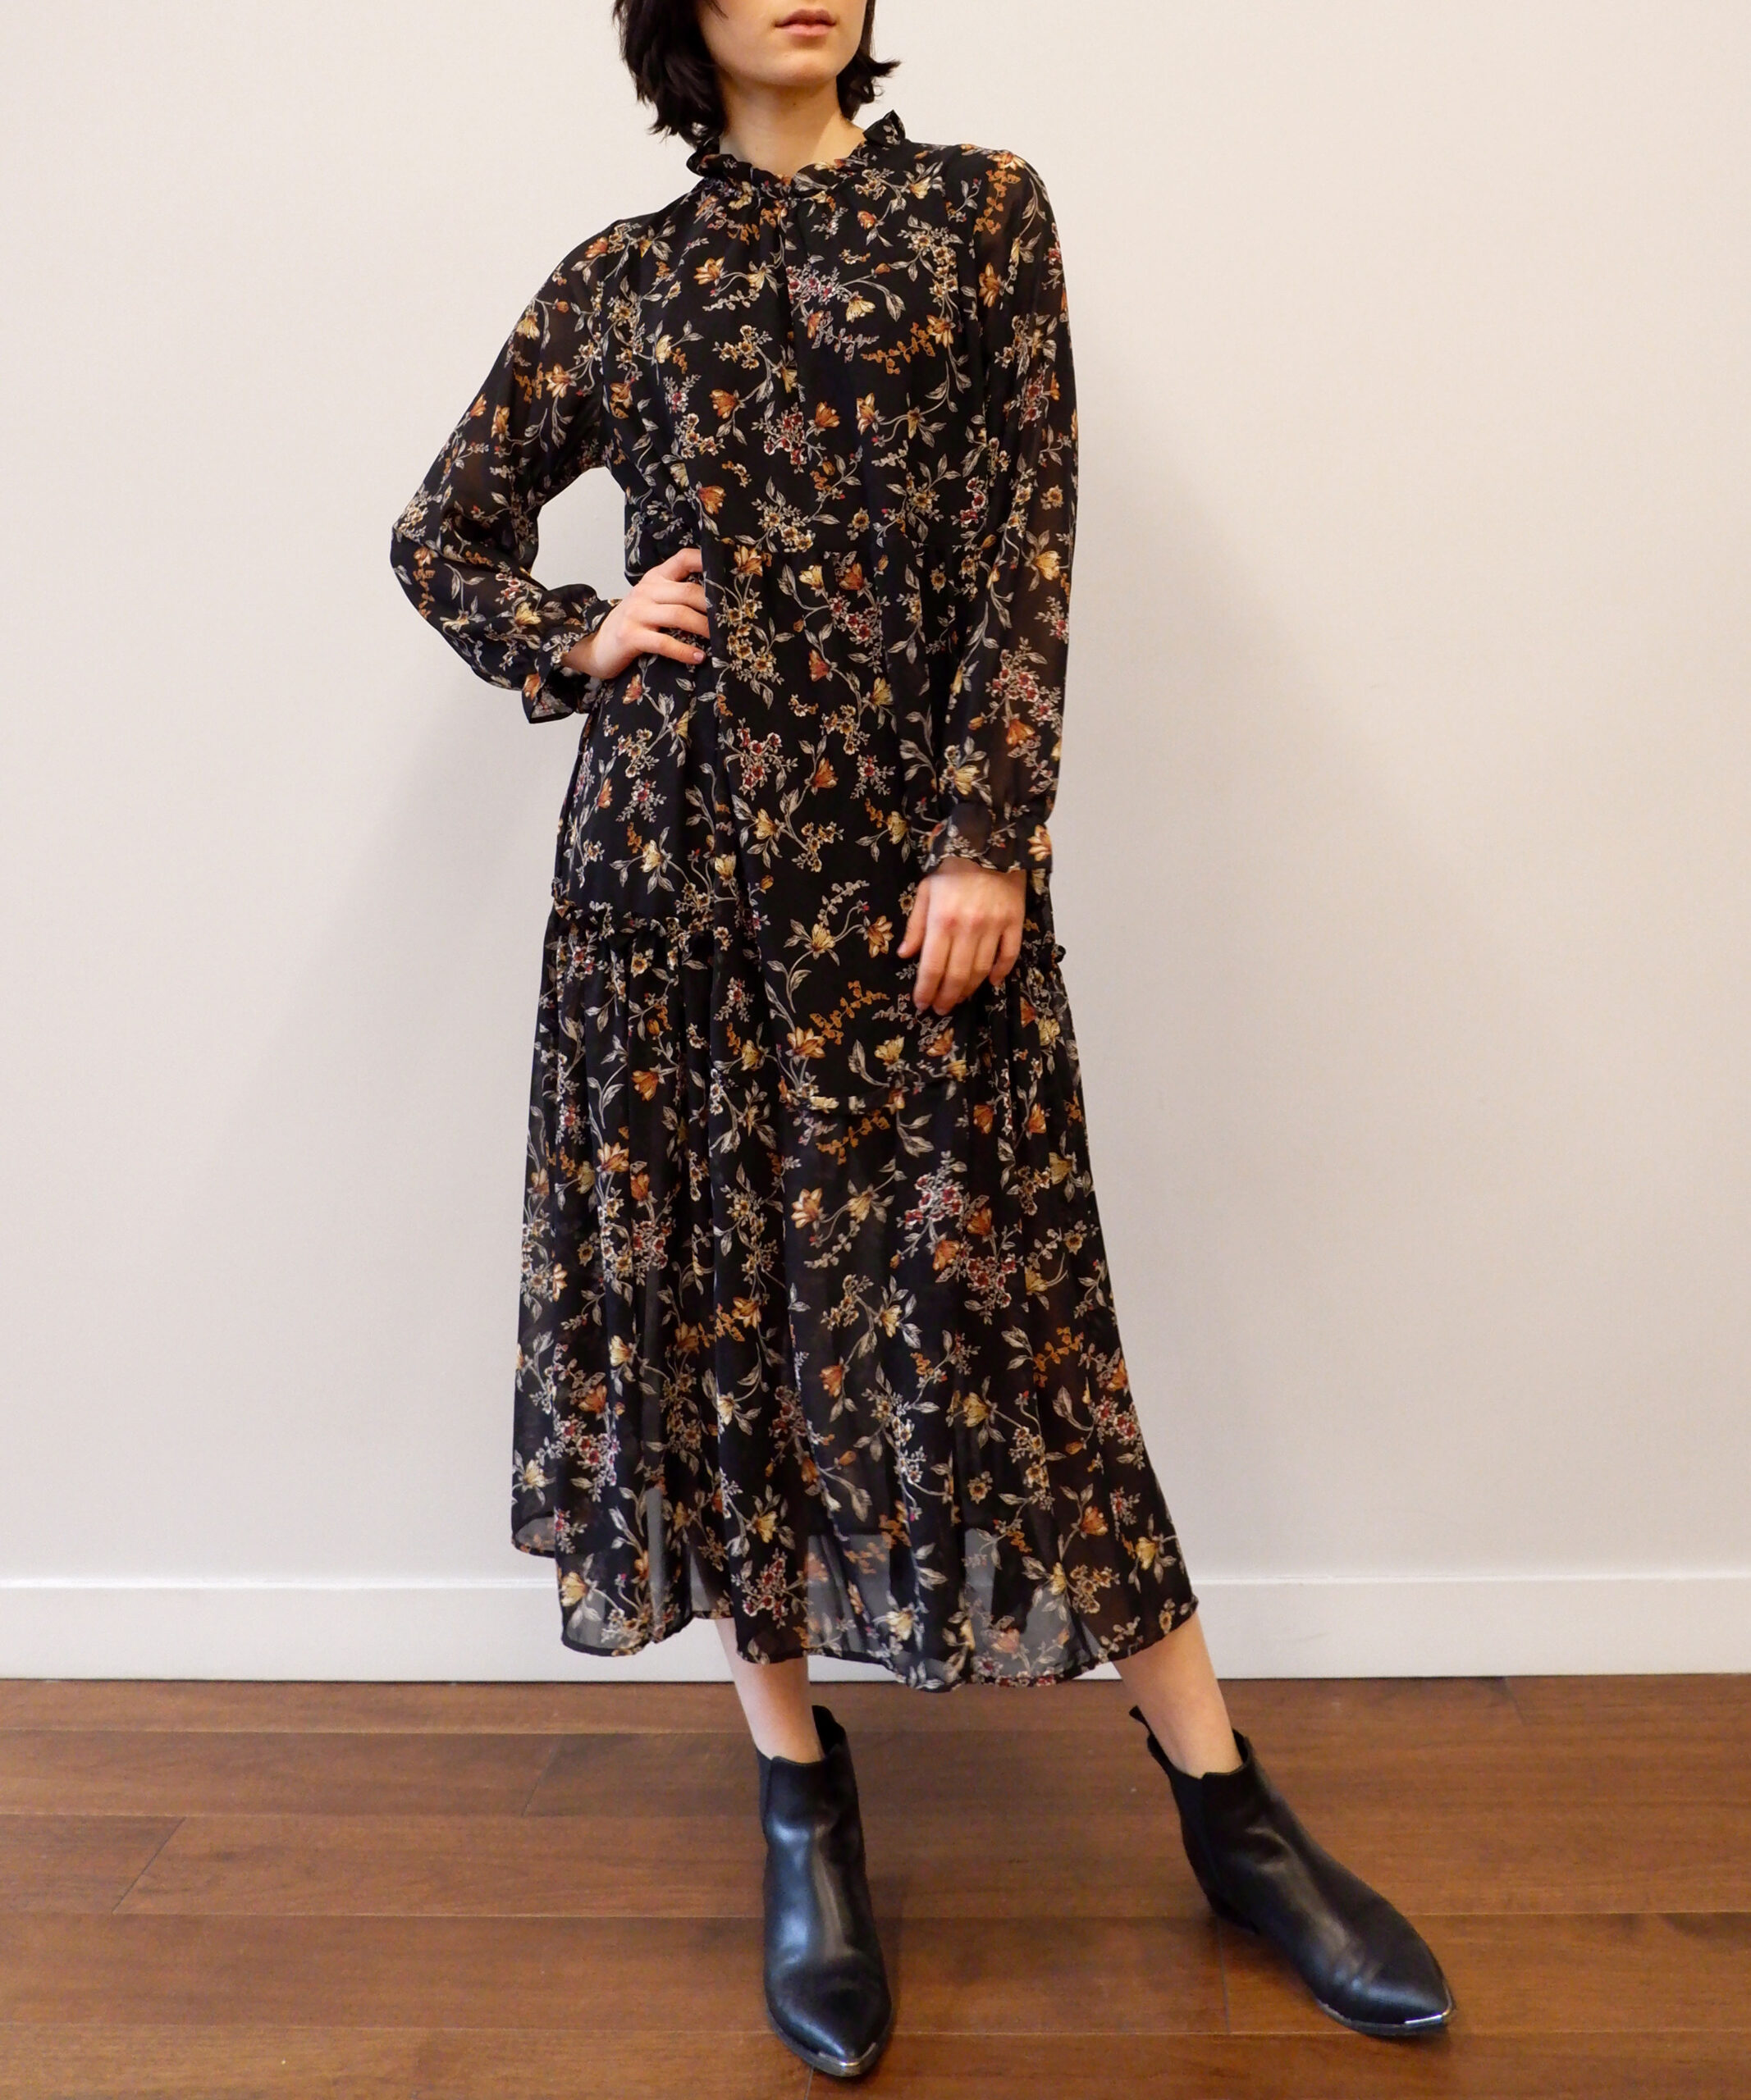 Black moody floral print midi dress from The Dallant, Korean fashion online shopping site, fashion item for transitional weather in korea